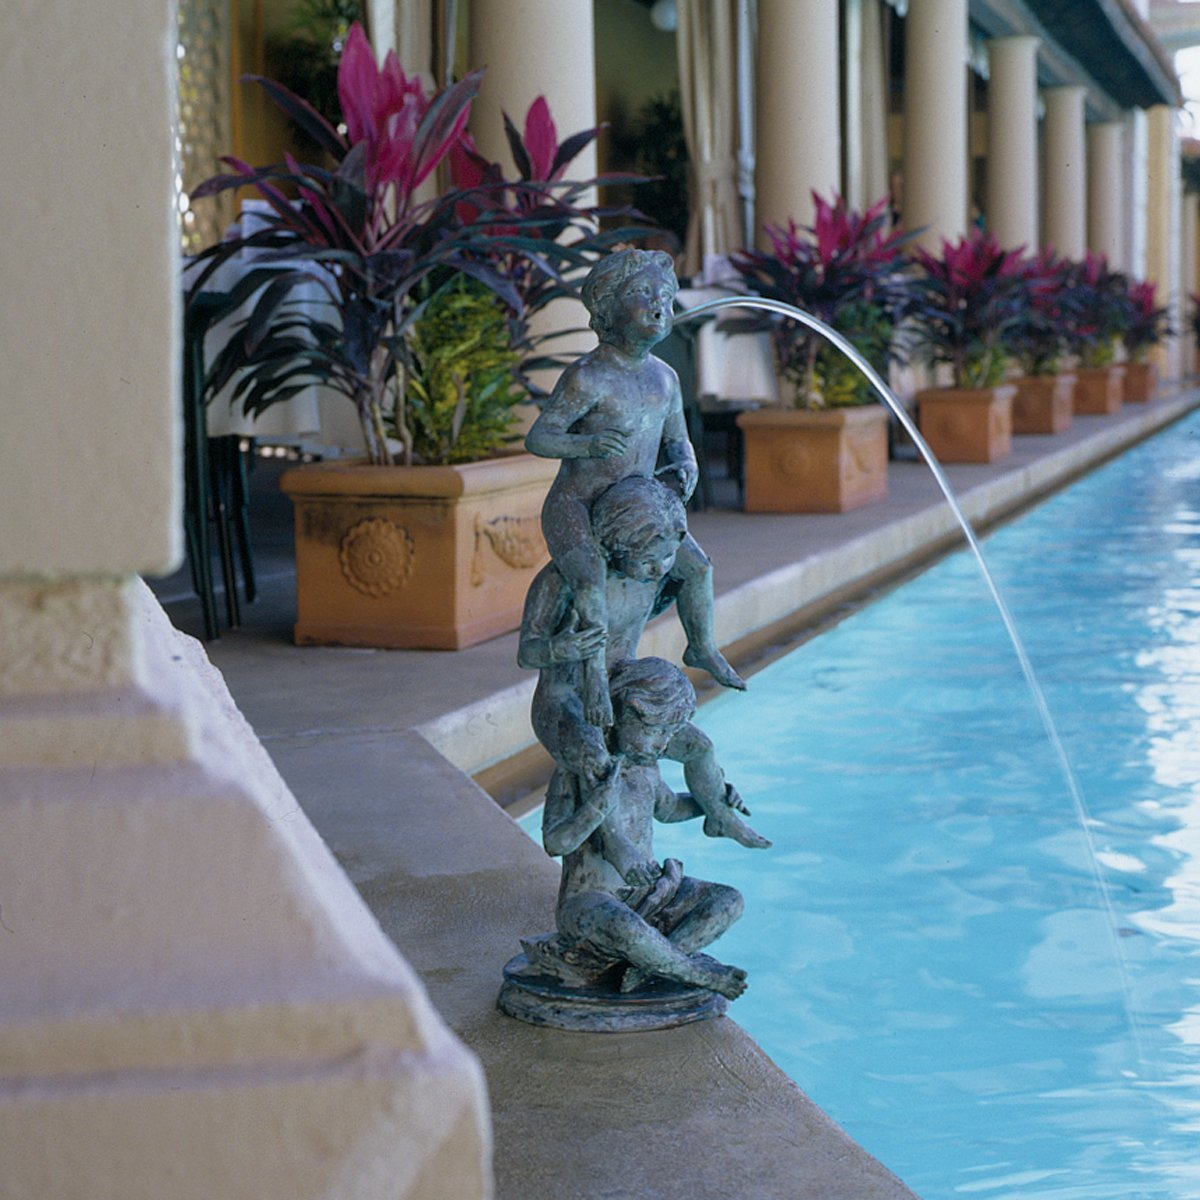 Stsatuette For Outdoor Ponds: Beautiful Fountains For Garden: Solar And Sculptural